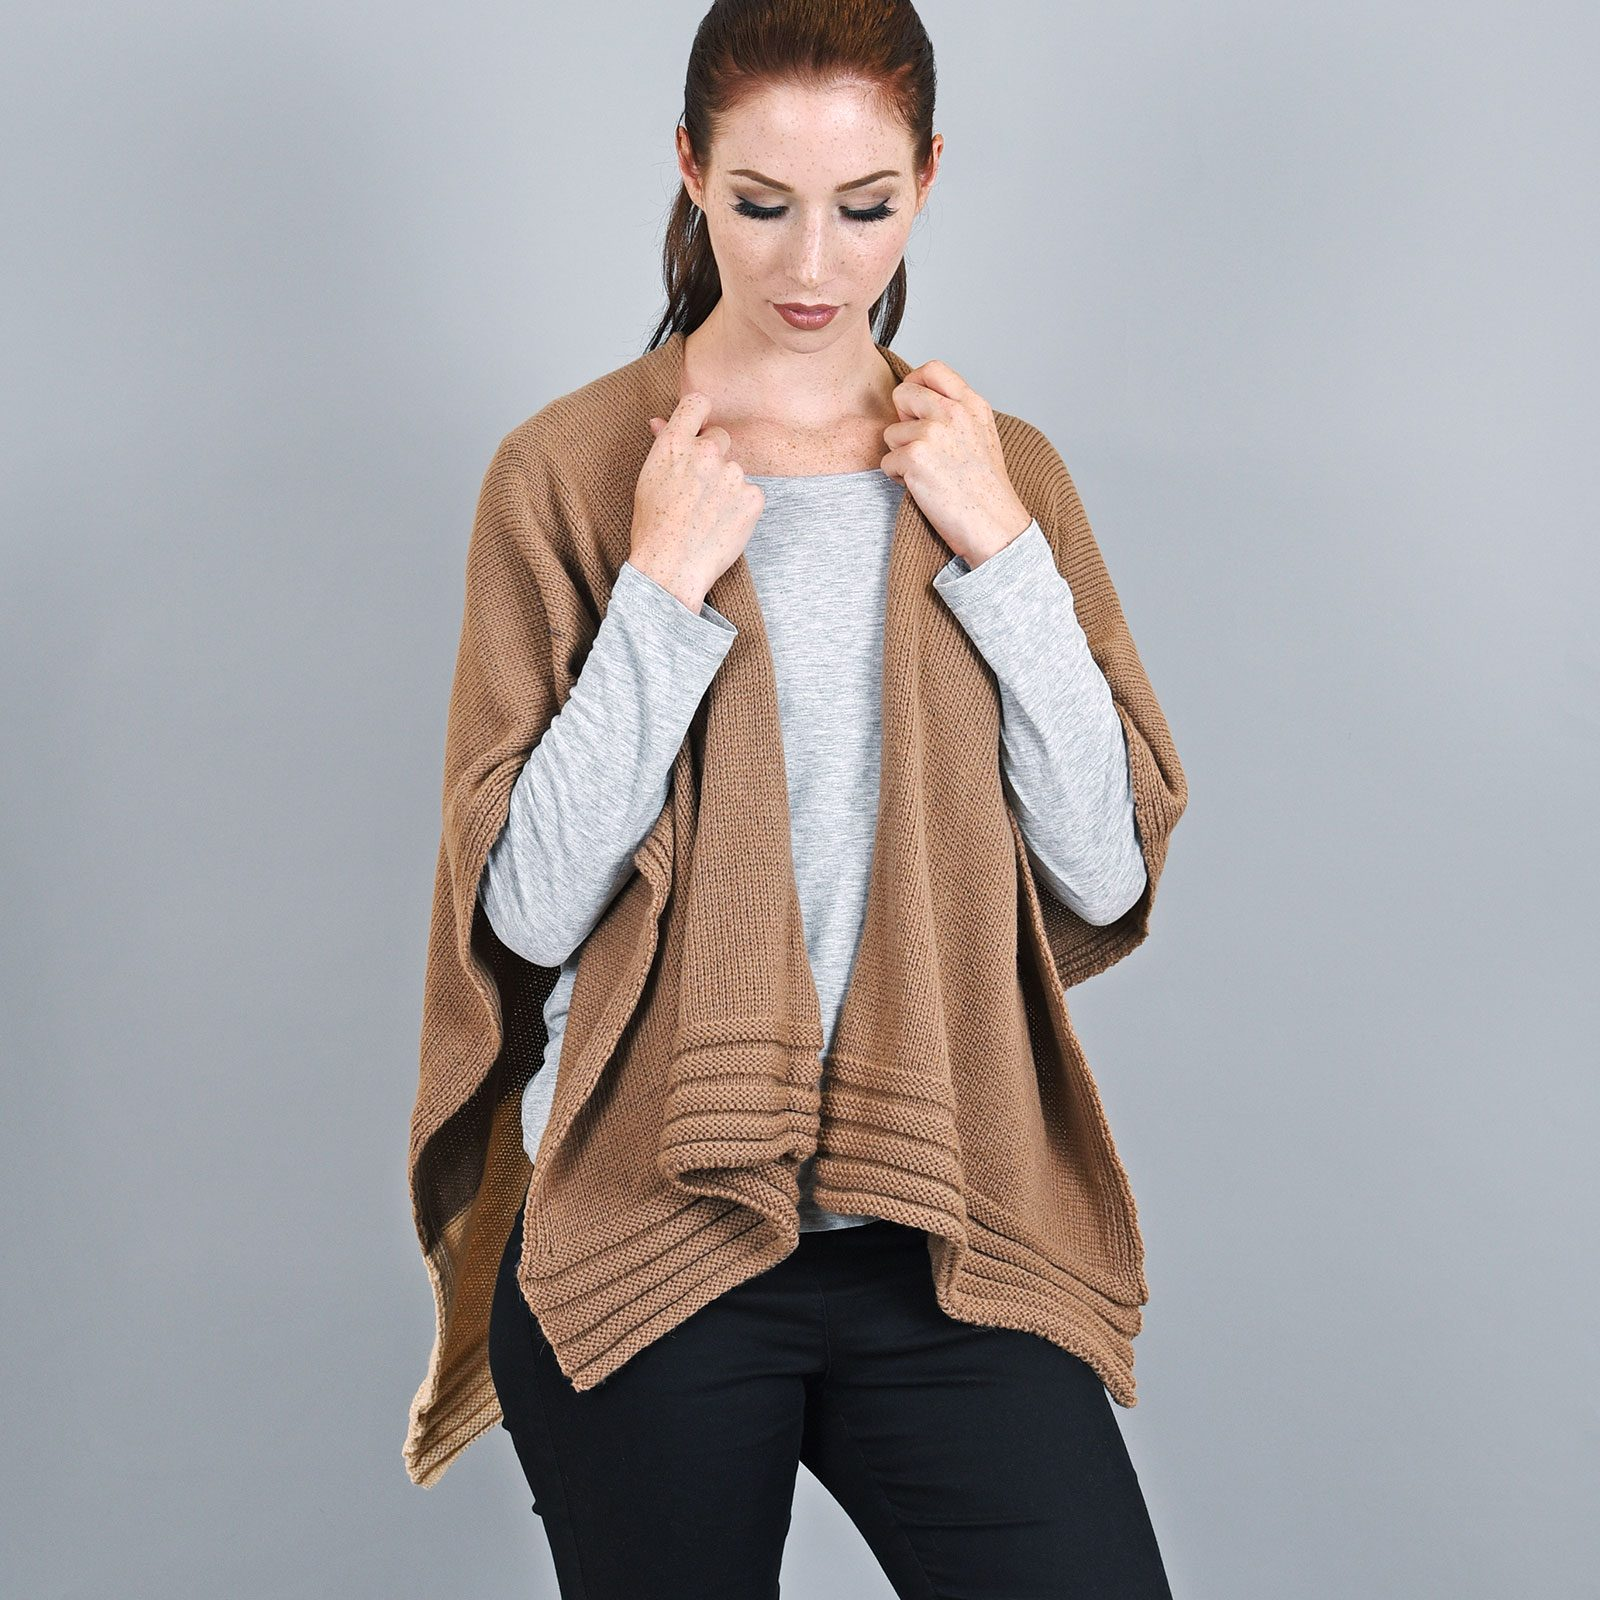 http://lookbook.allee-du-foulard.fr/wp-content/uploads/2019/01/AT-03197-VF16-2-poncho-femme-taupe-creme-fabrication-francaise-1600x1600.jpg